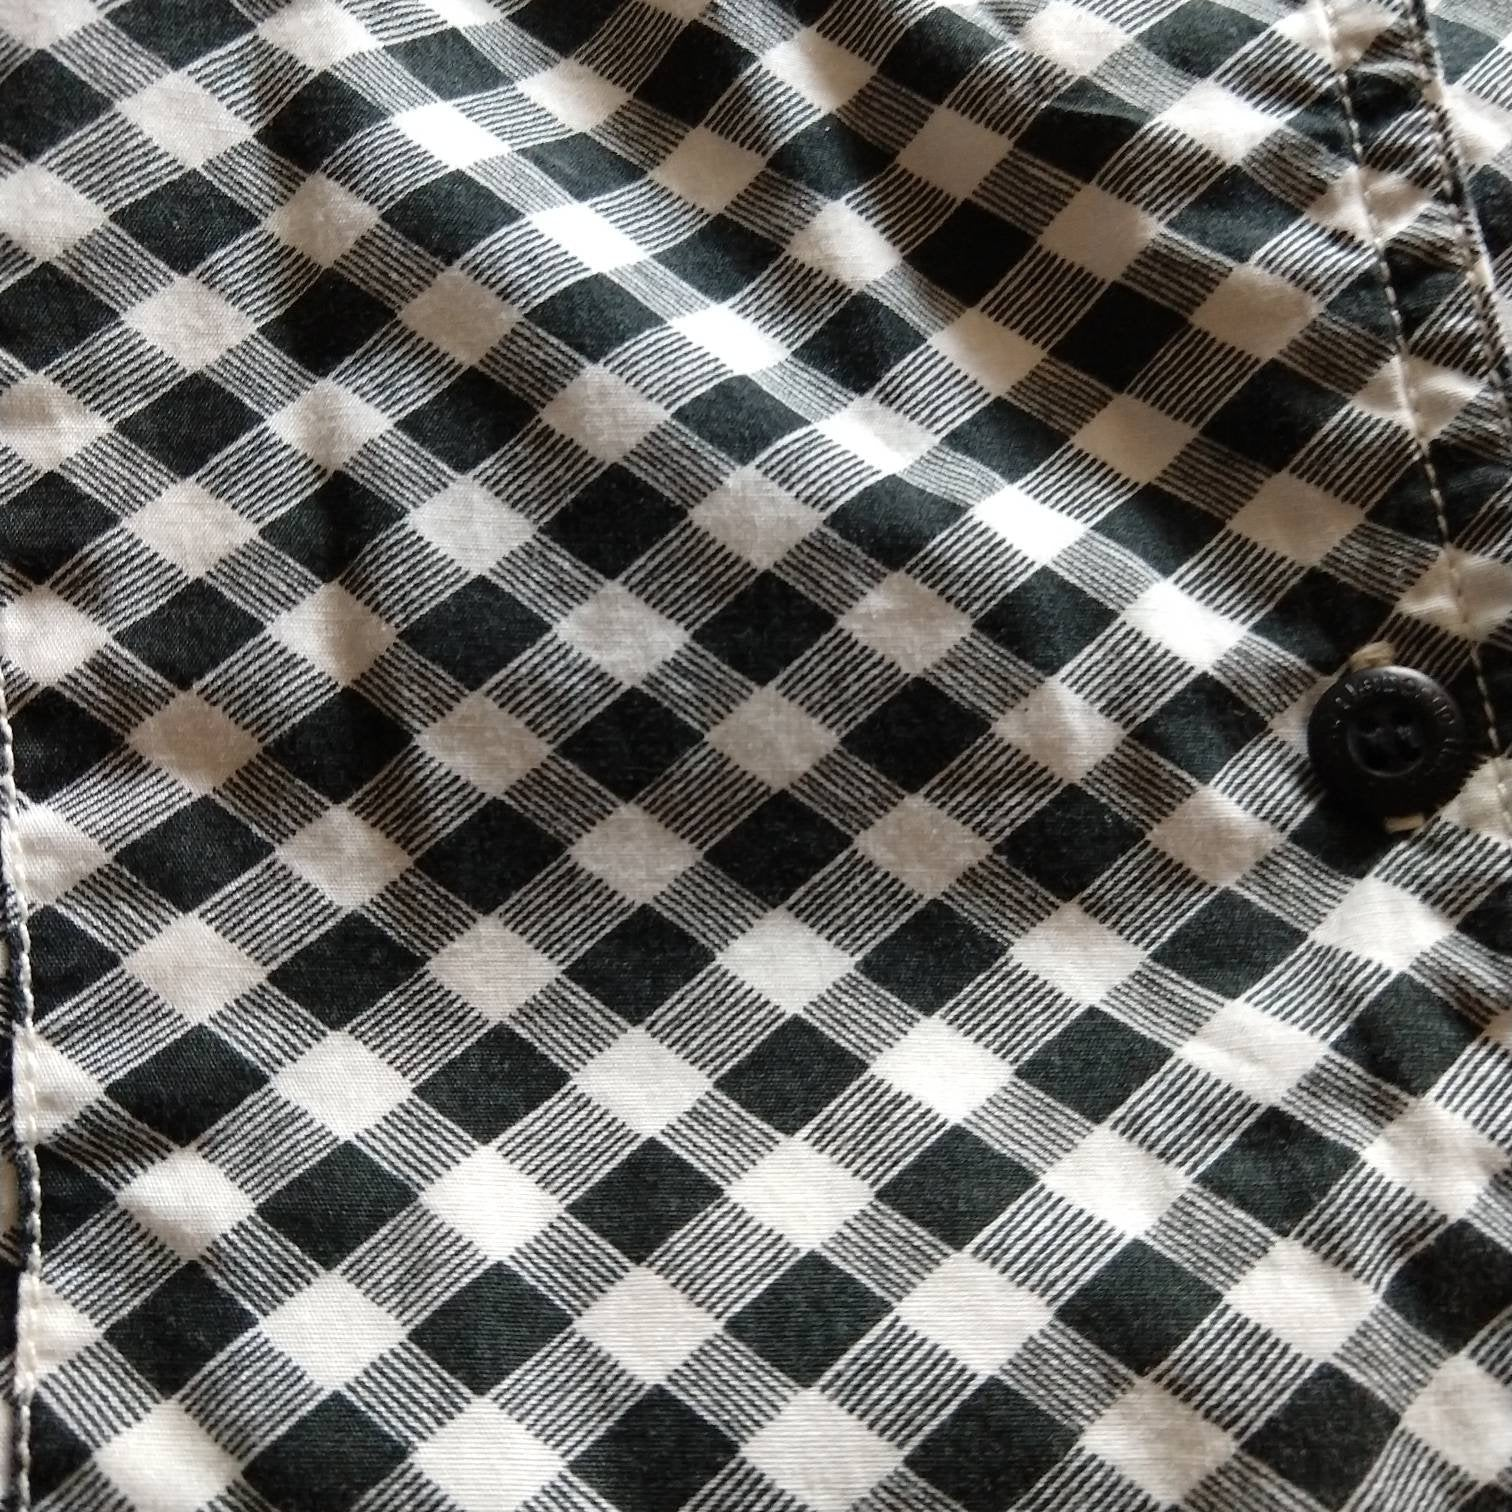 LIZ CLAIBORNE black and white gingham BLOUSE L